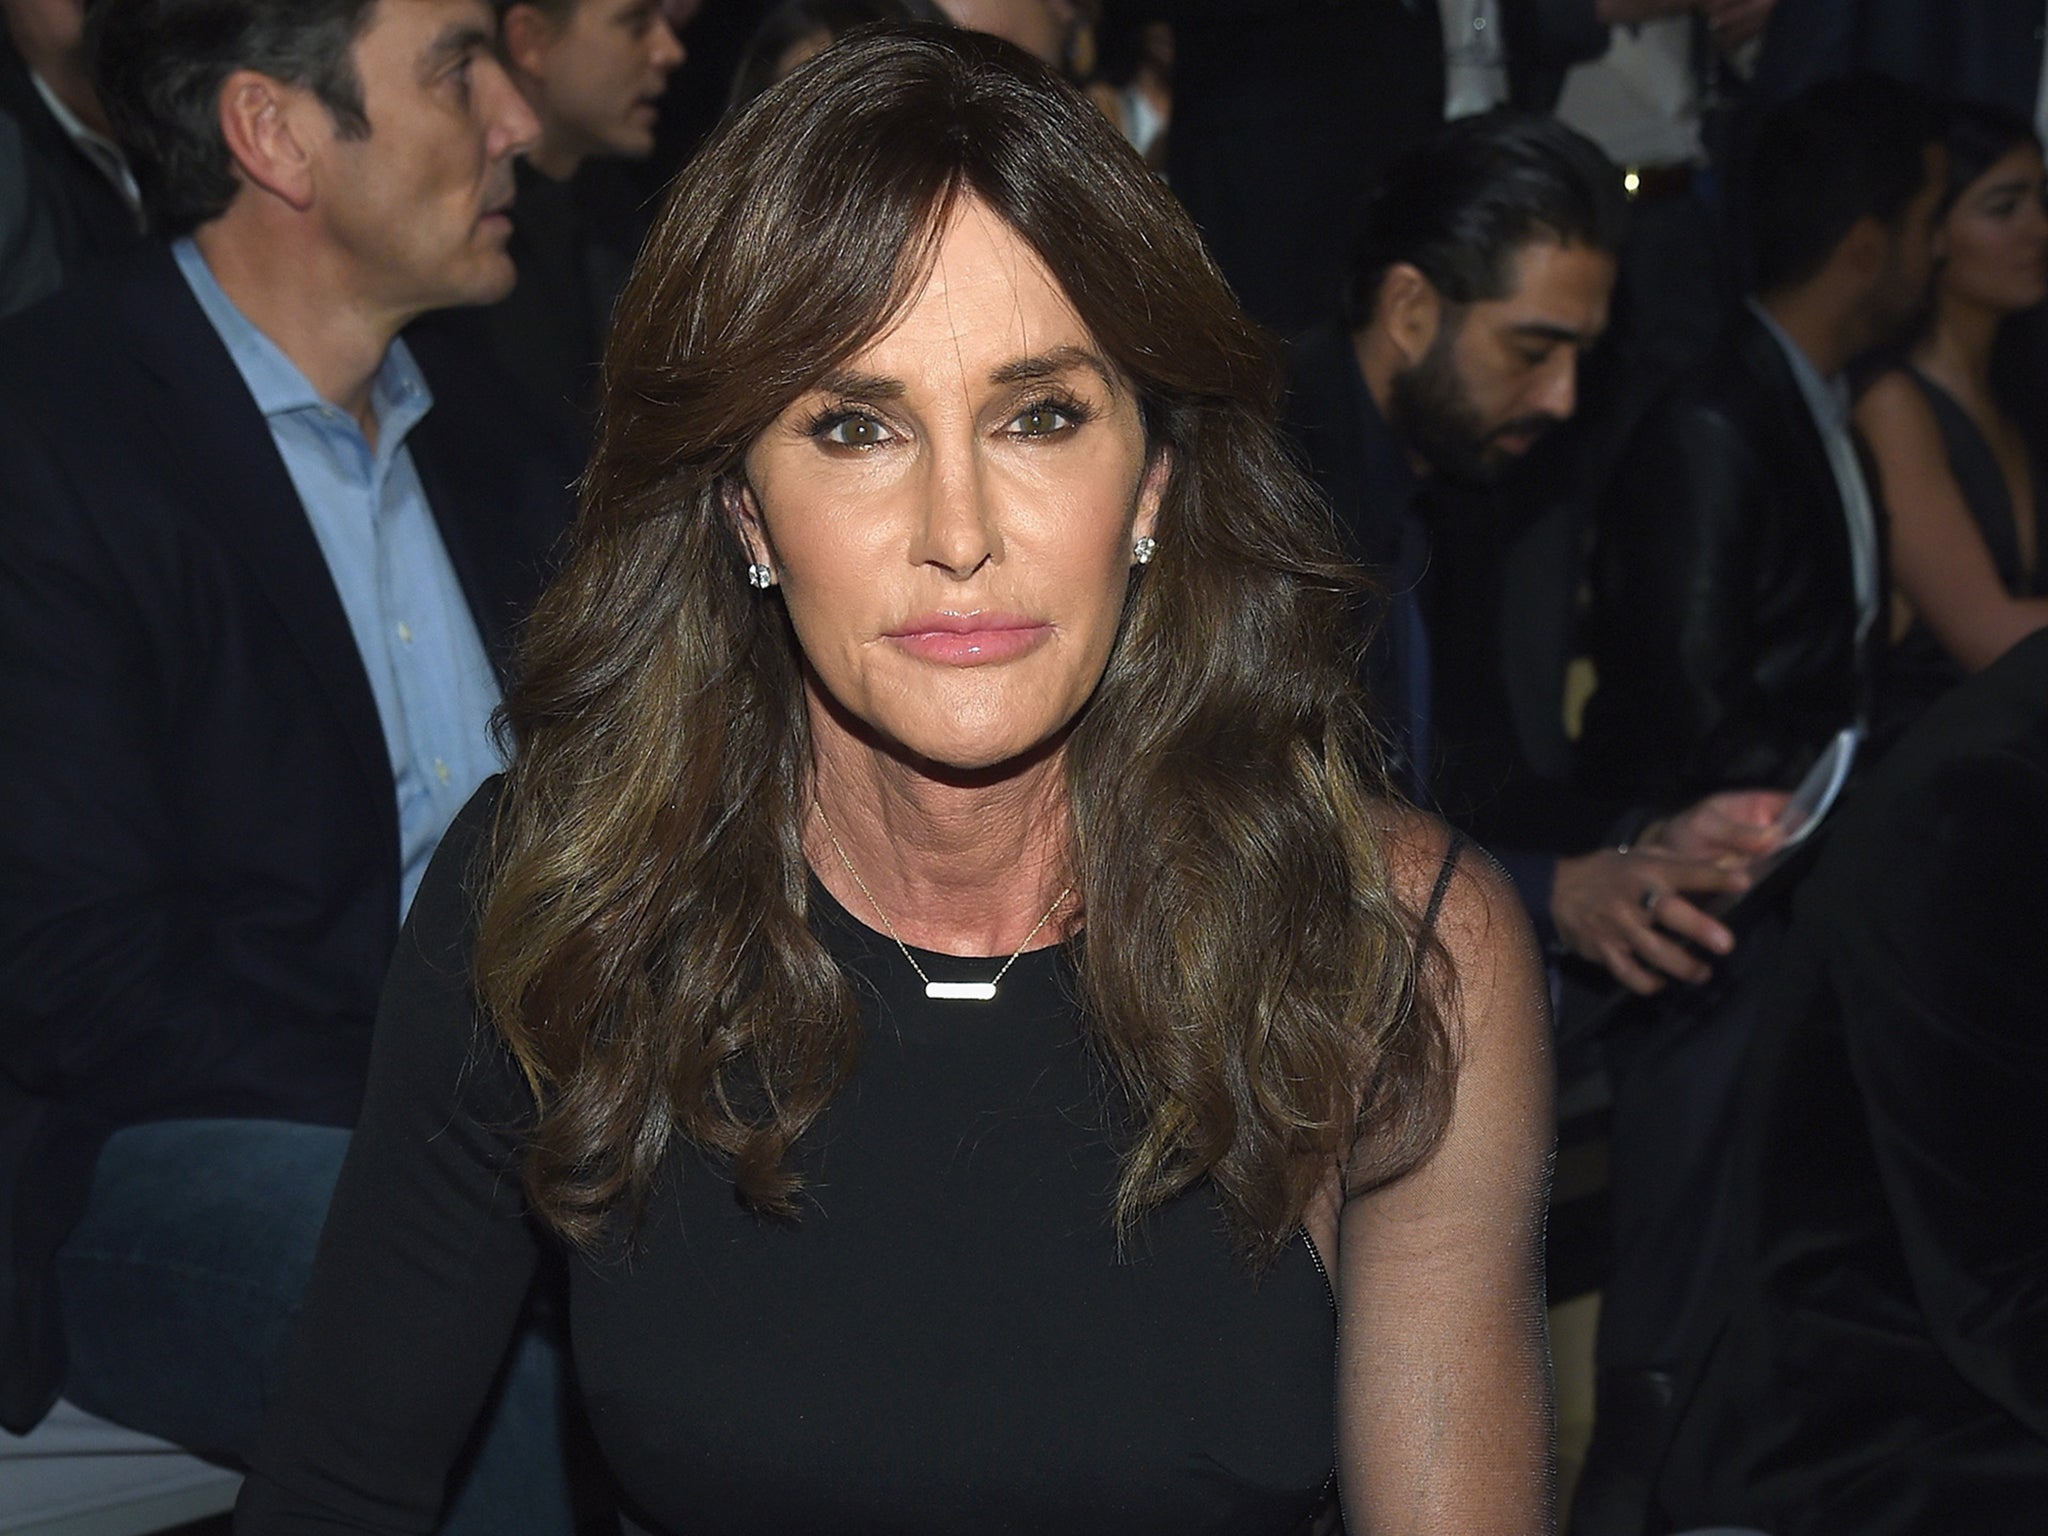 Caitlyn Jenner May De Transition To Male Claims